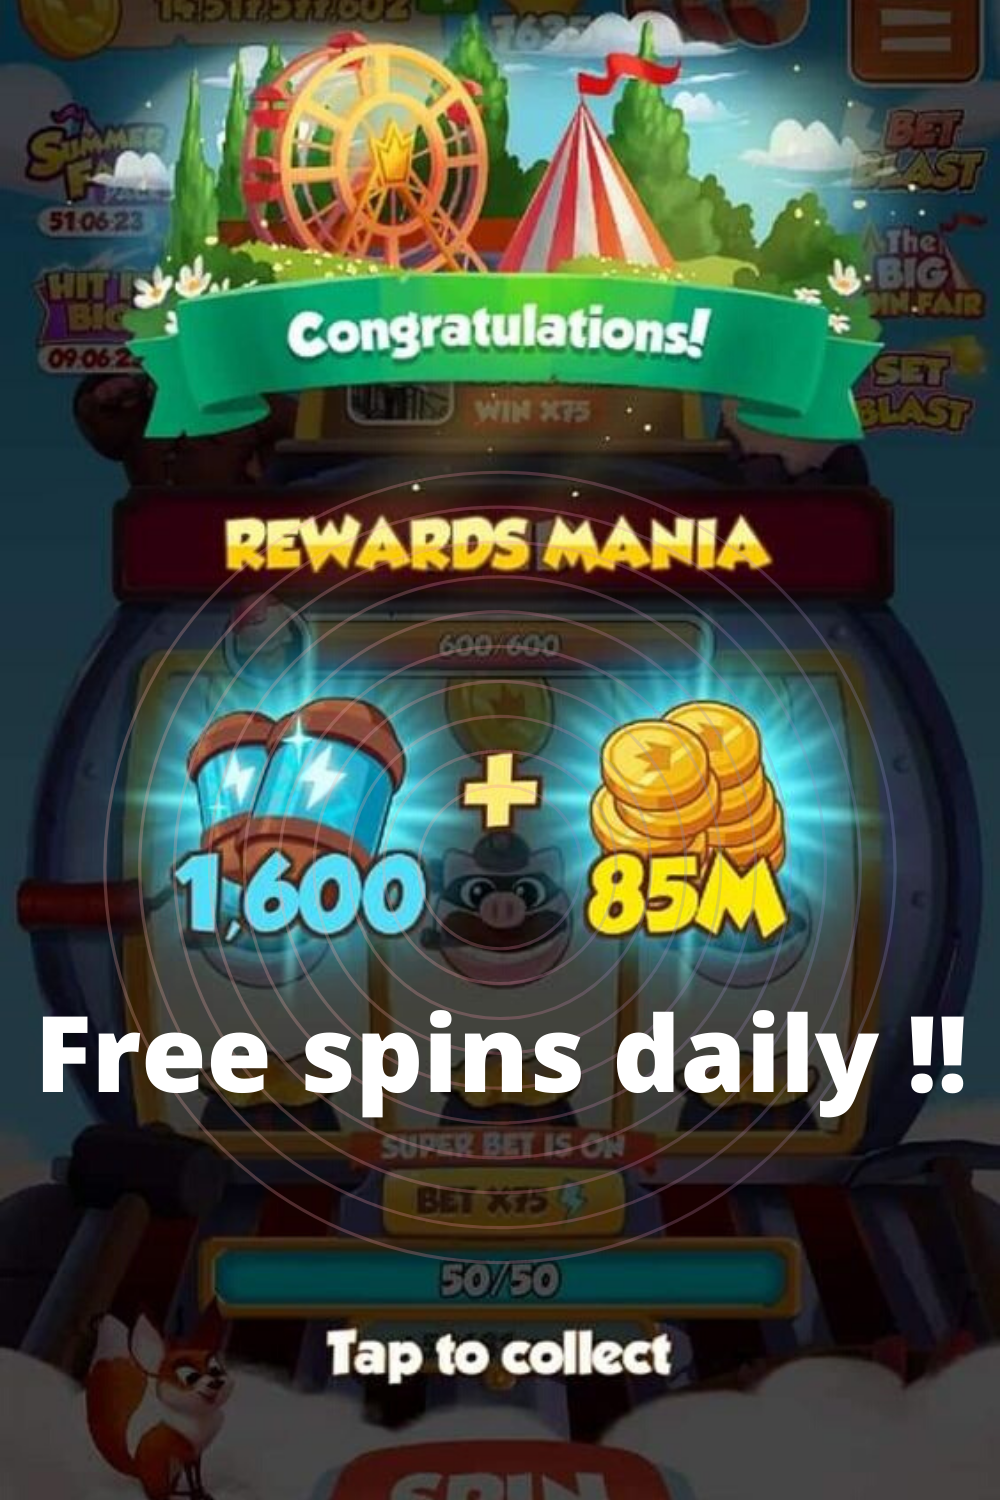 How To Get Free Spins In Coinmaster New Coin Master Hack Spinning Miss You Gifts